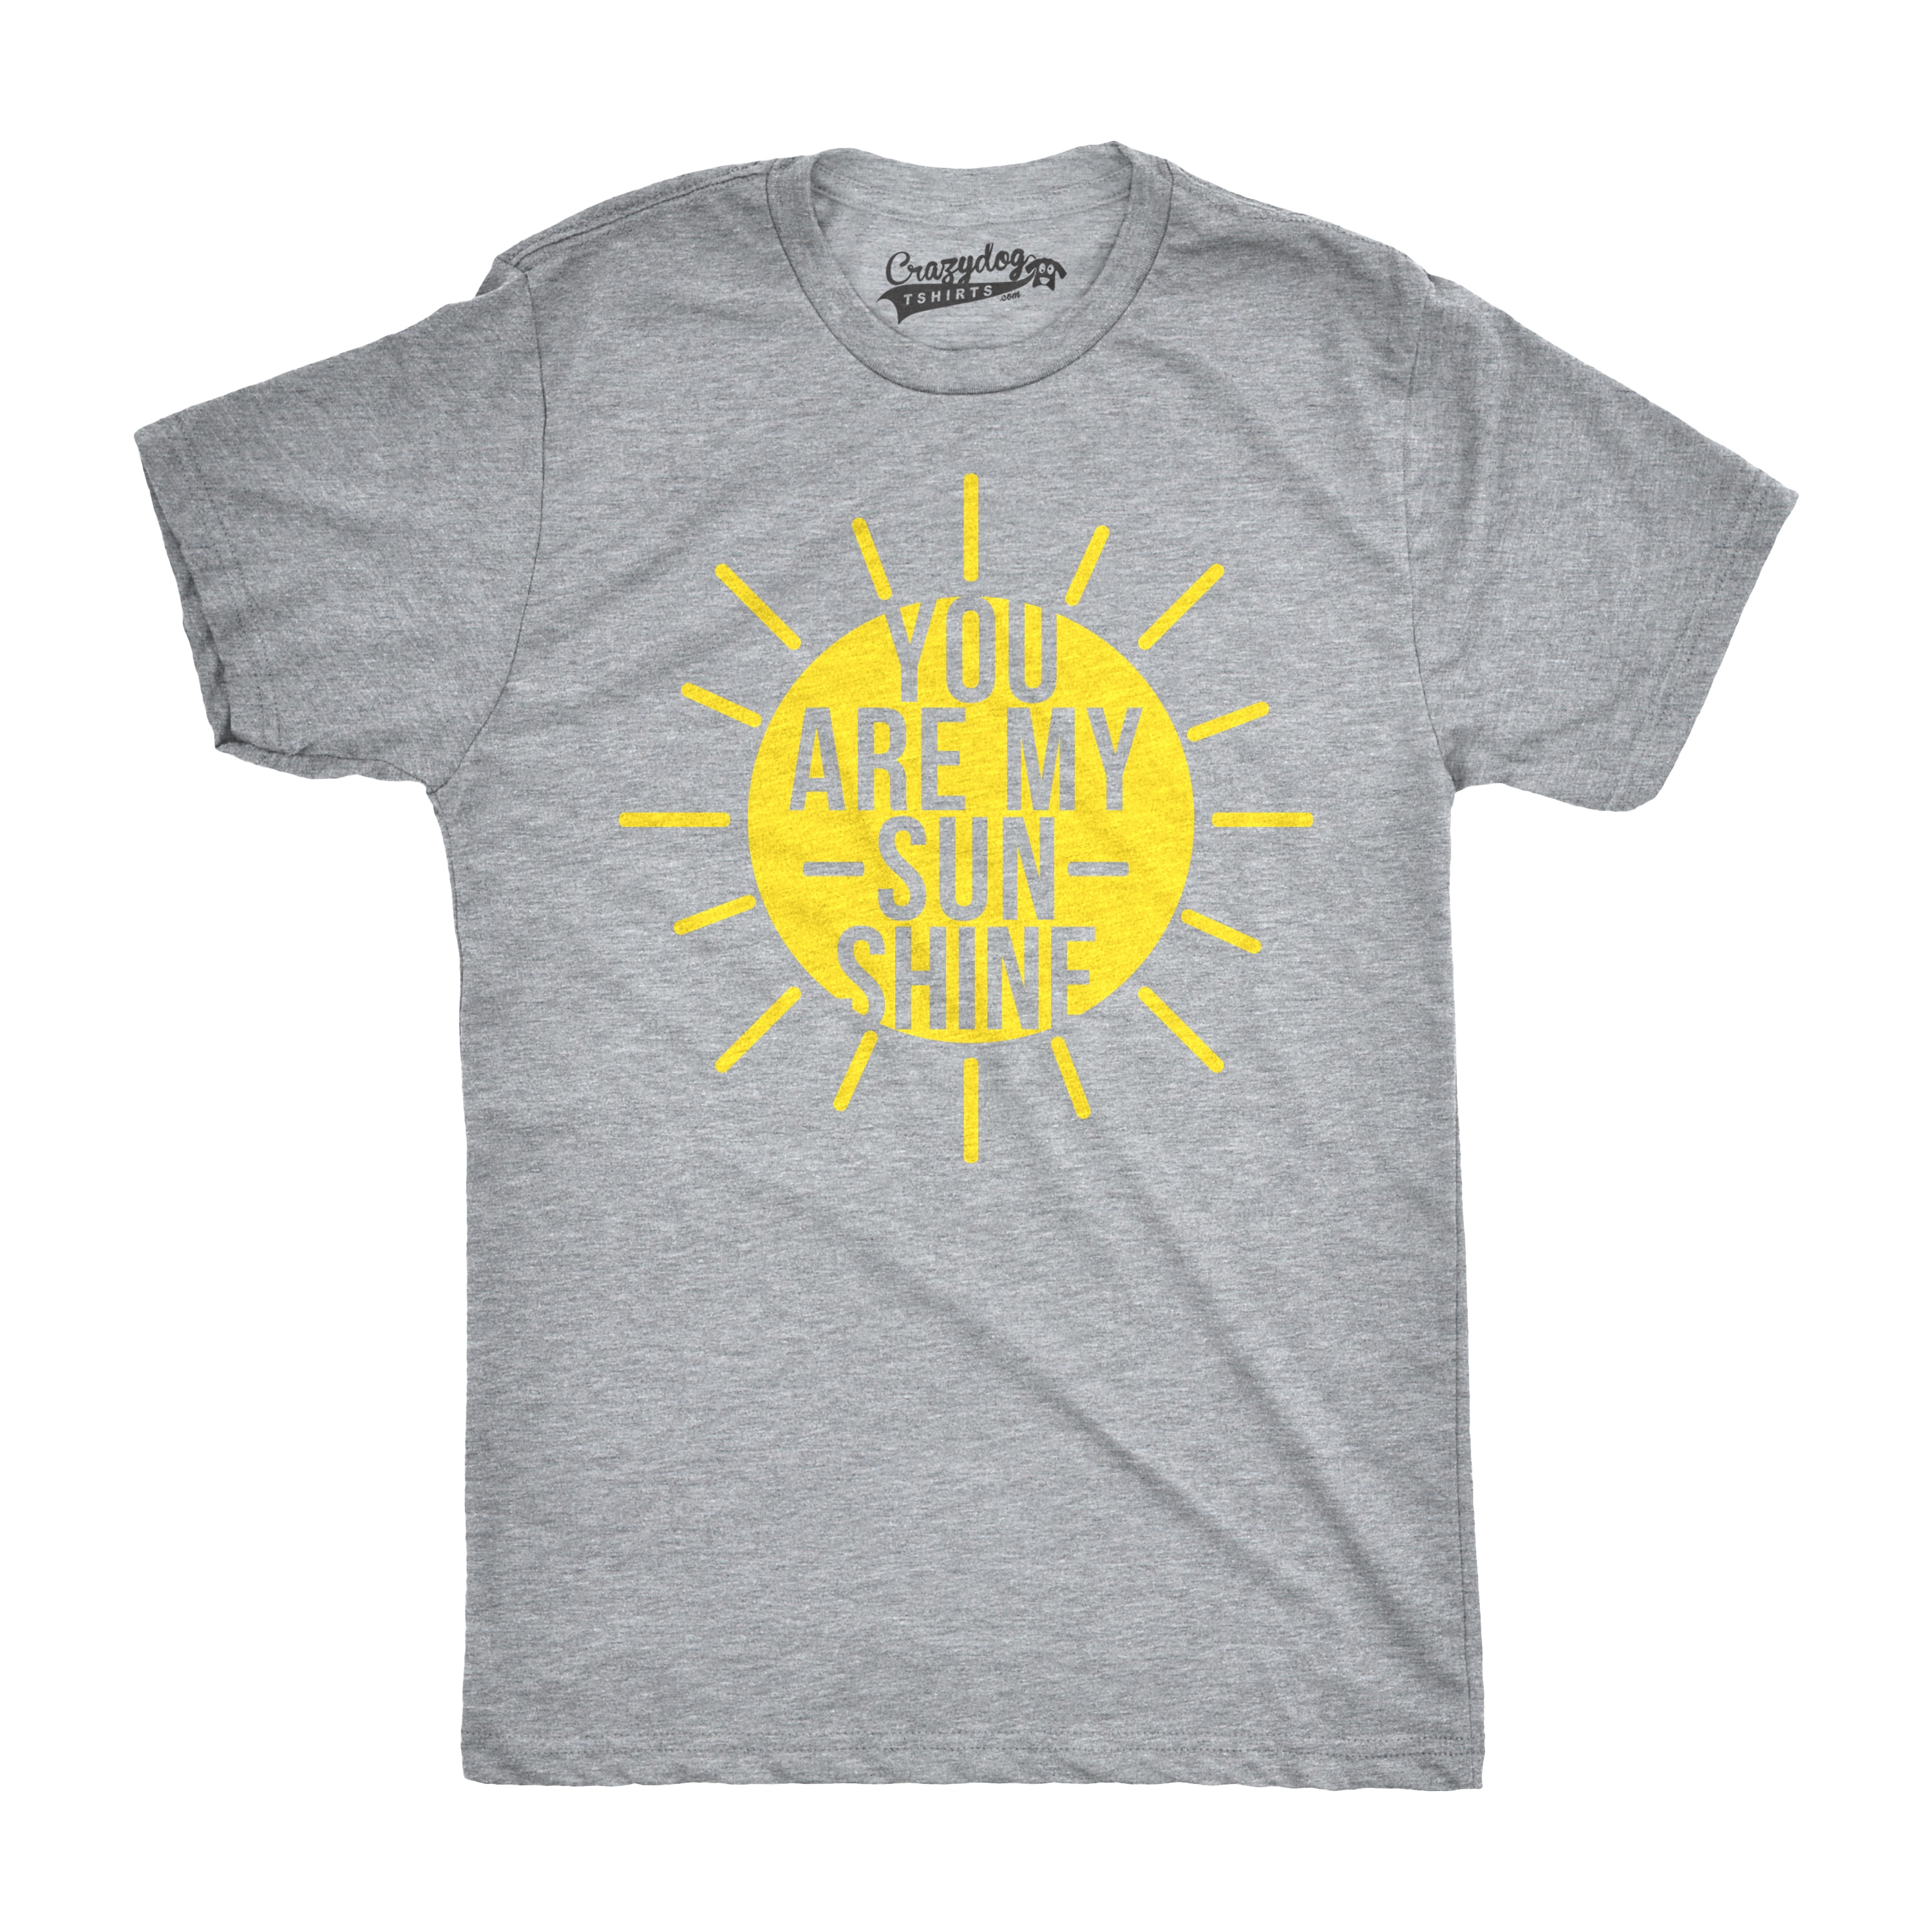 9da8faa28 Shop Mens You Are My Sunshine T shirts Funny Summer Tee Cute Adorable Novelty  Graphic T shirt - Free Shipping On Orders Over $45 - Overstock - 18534501